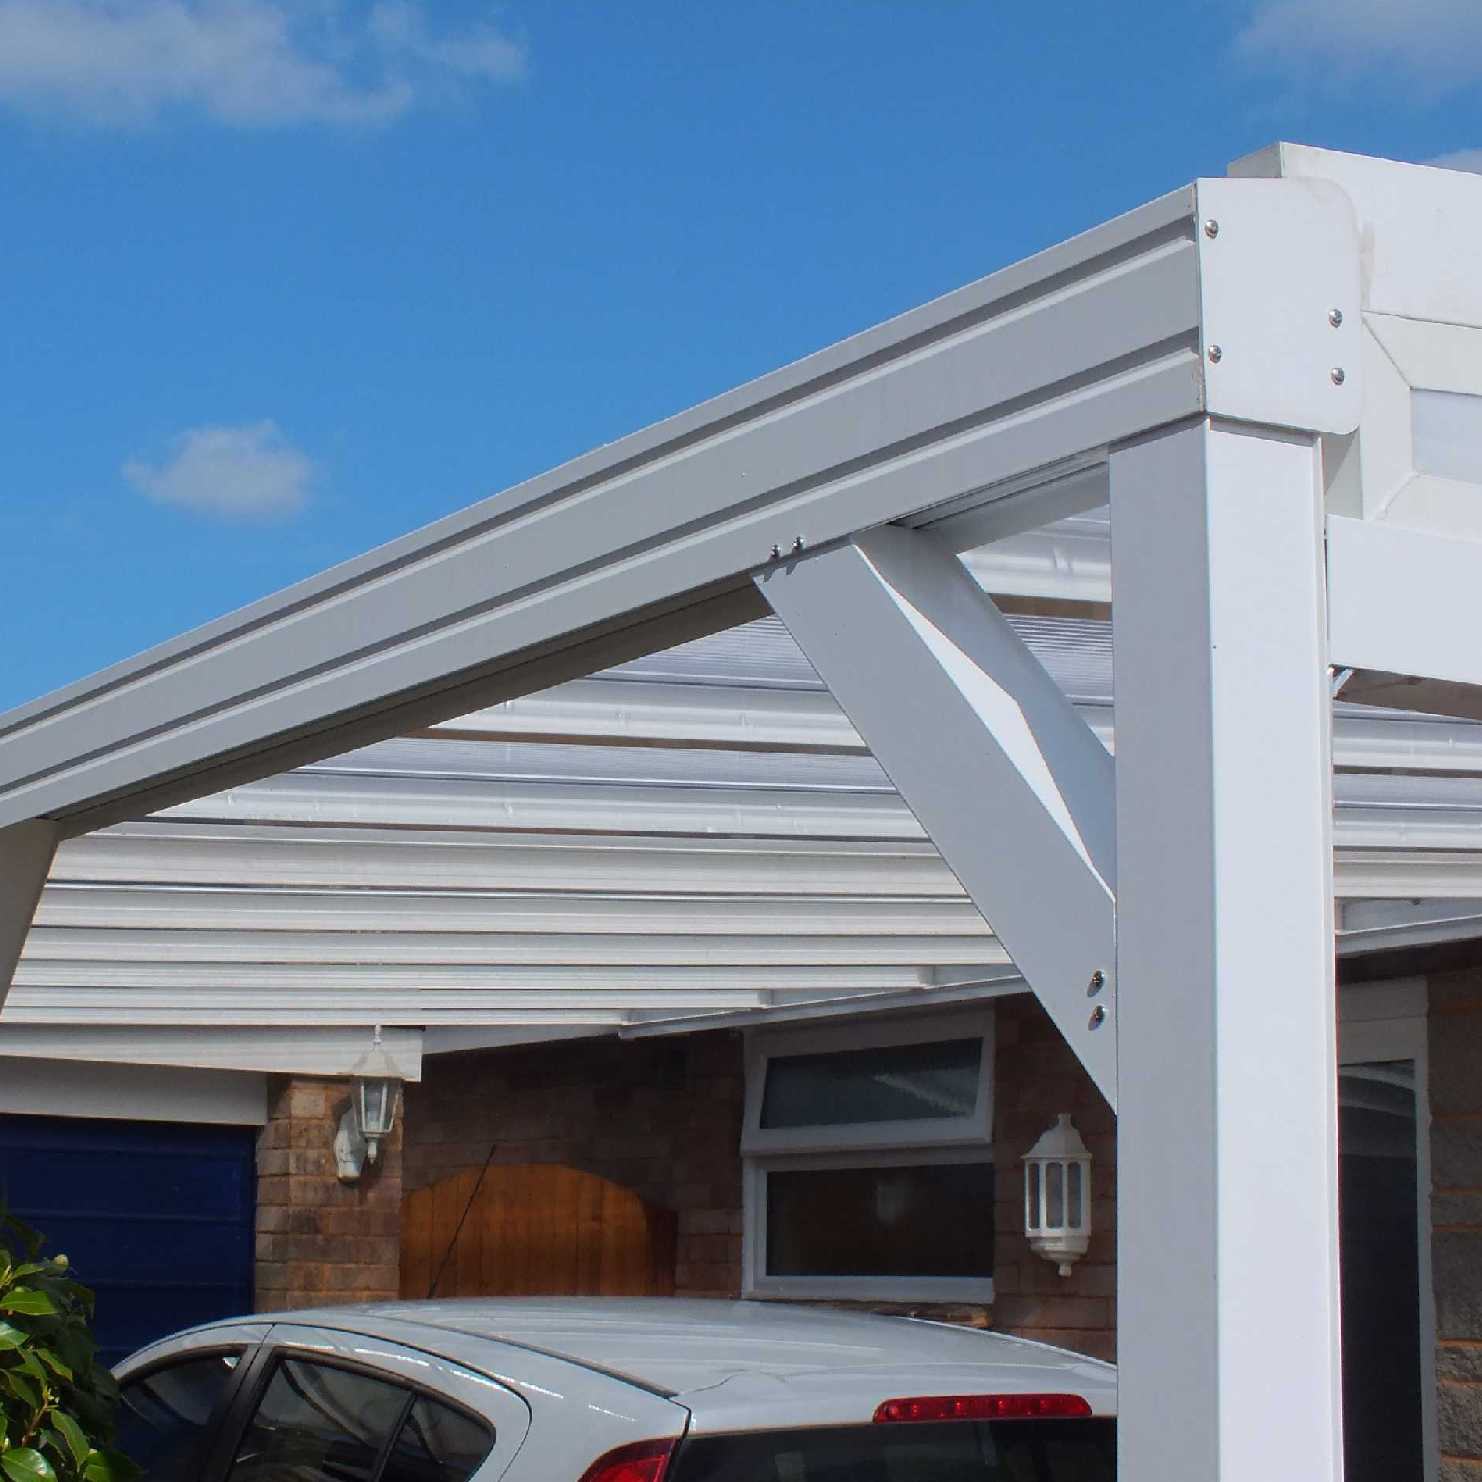 Great deals on Omega Smart White Lean-To Canopy with 16mm Polycarbonate Glazing - 8.4m (W) x 3.5m (P), (4) Supporting Posts